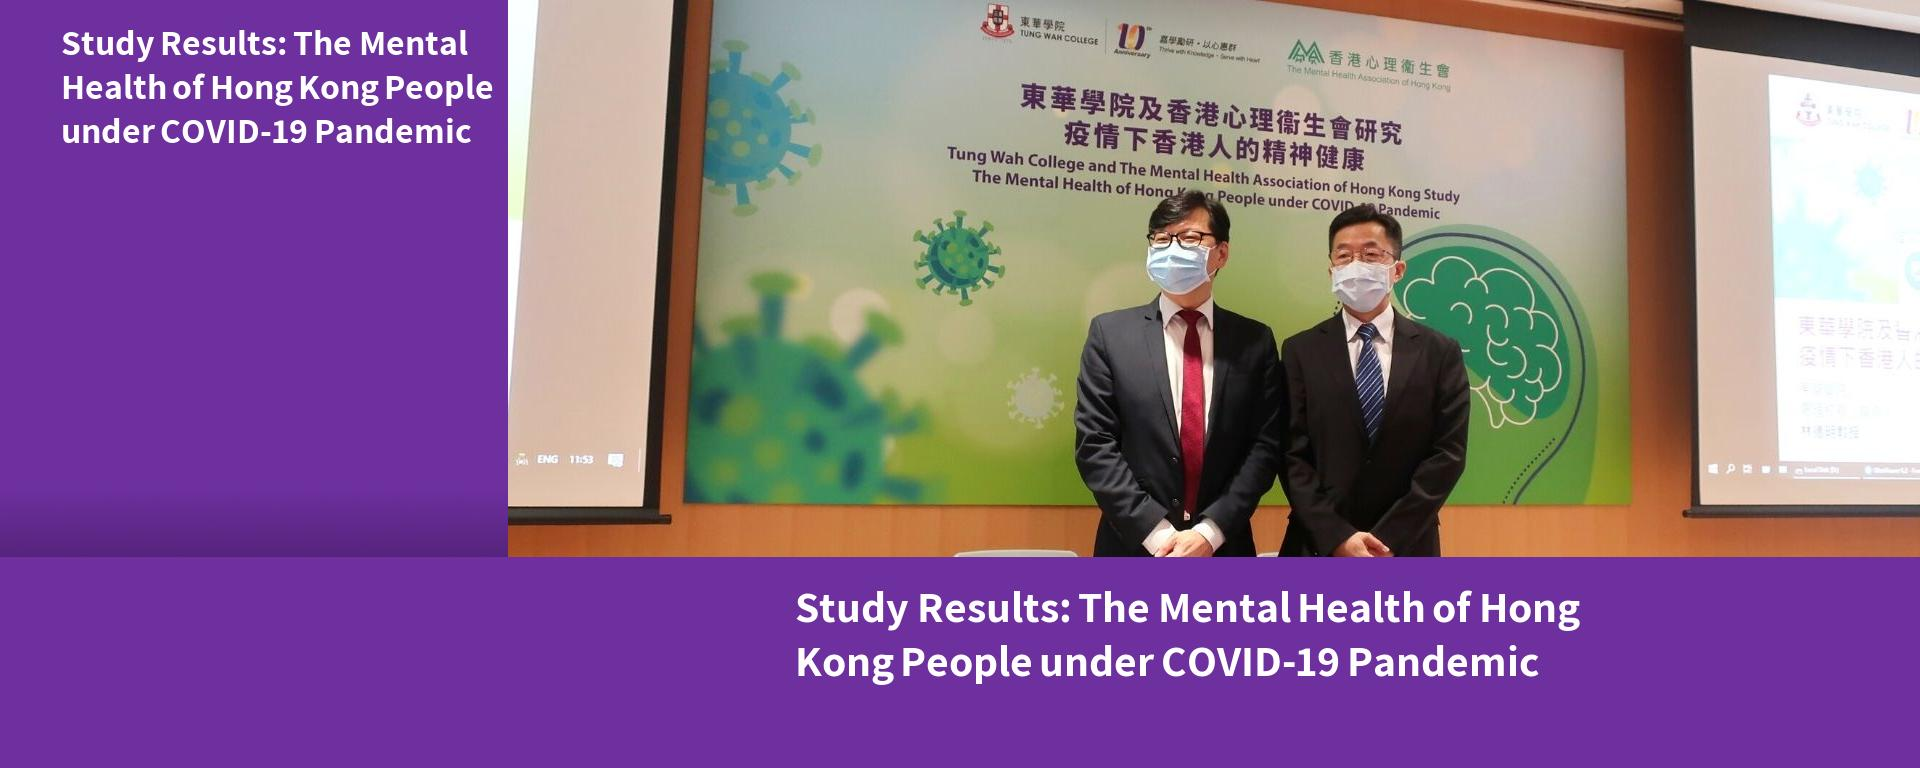 Study Results: The Mental Health of Hong Kong People under COVID-19 Pandemic